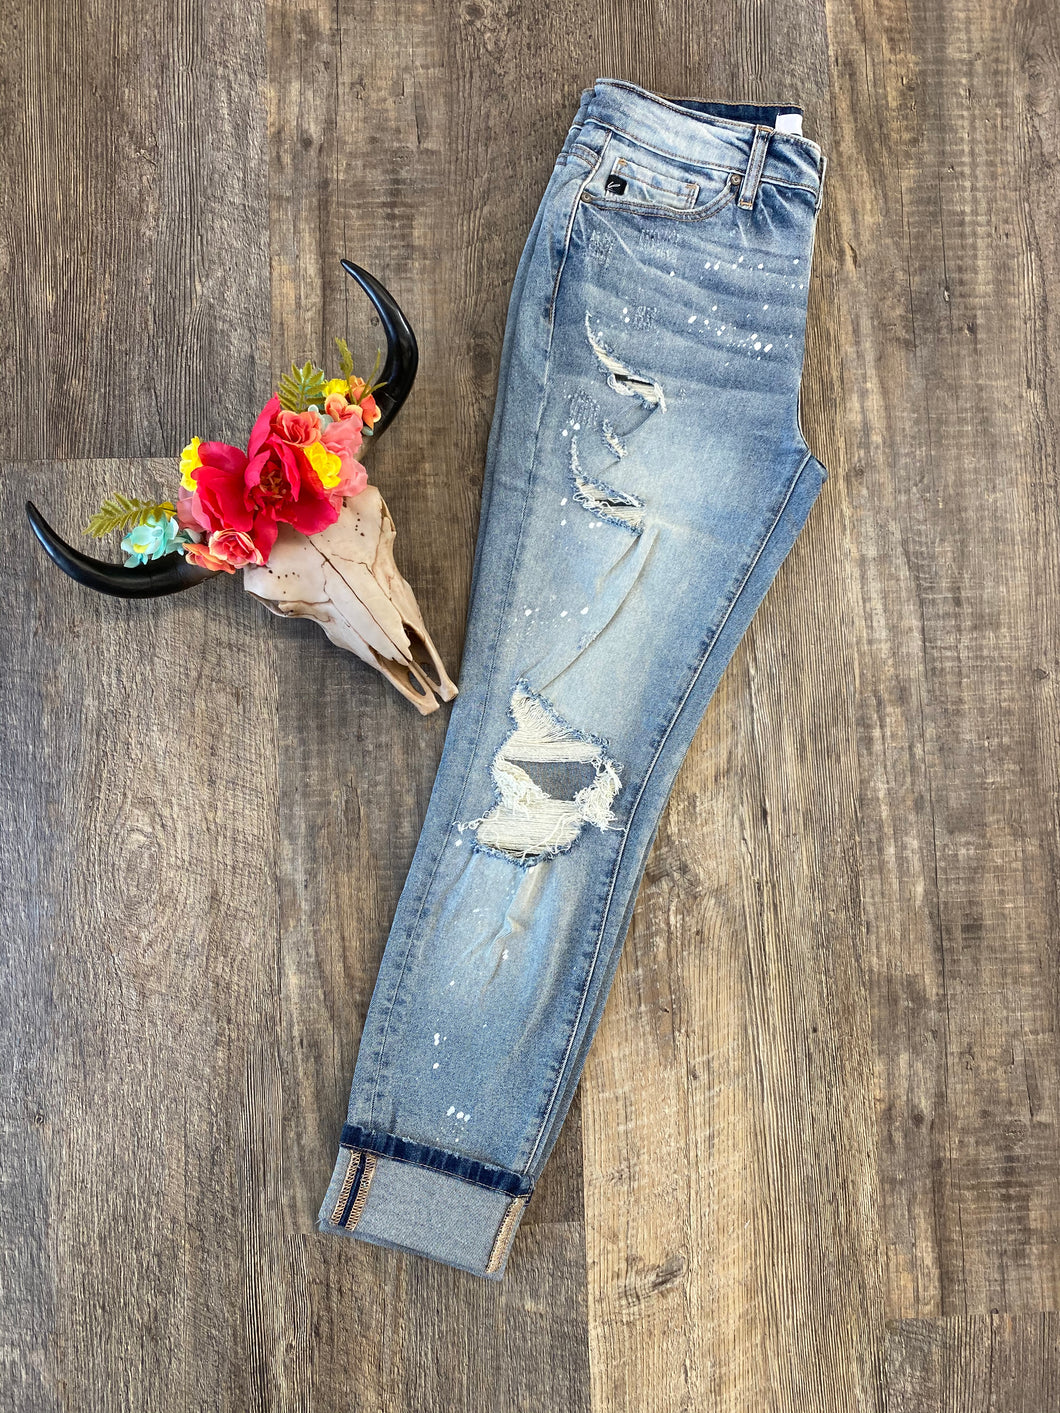 The Painted KanCan Jeans